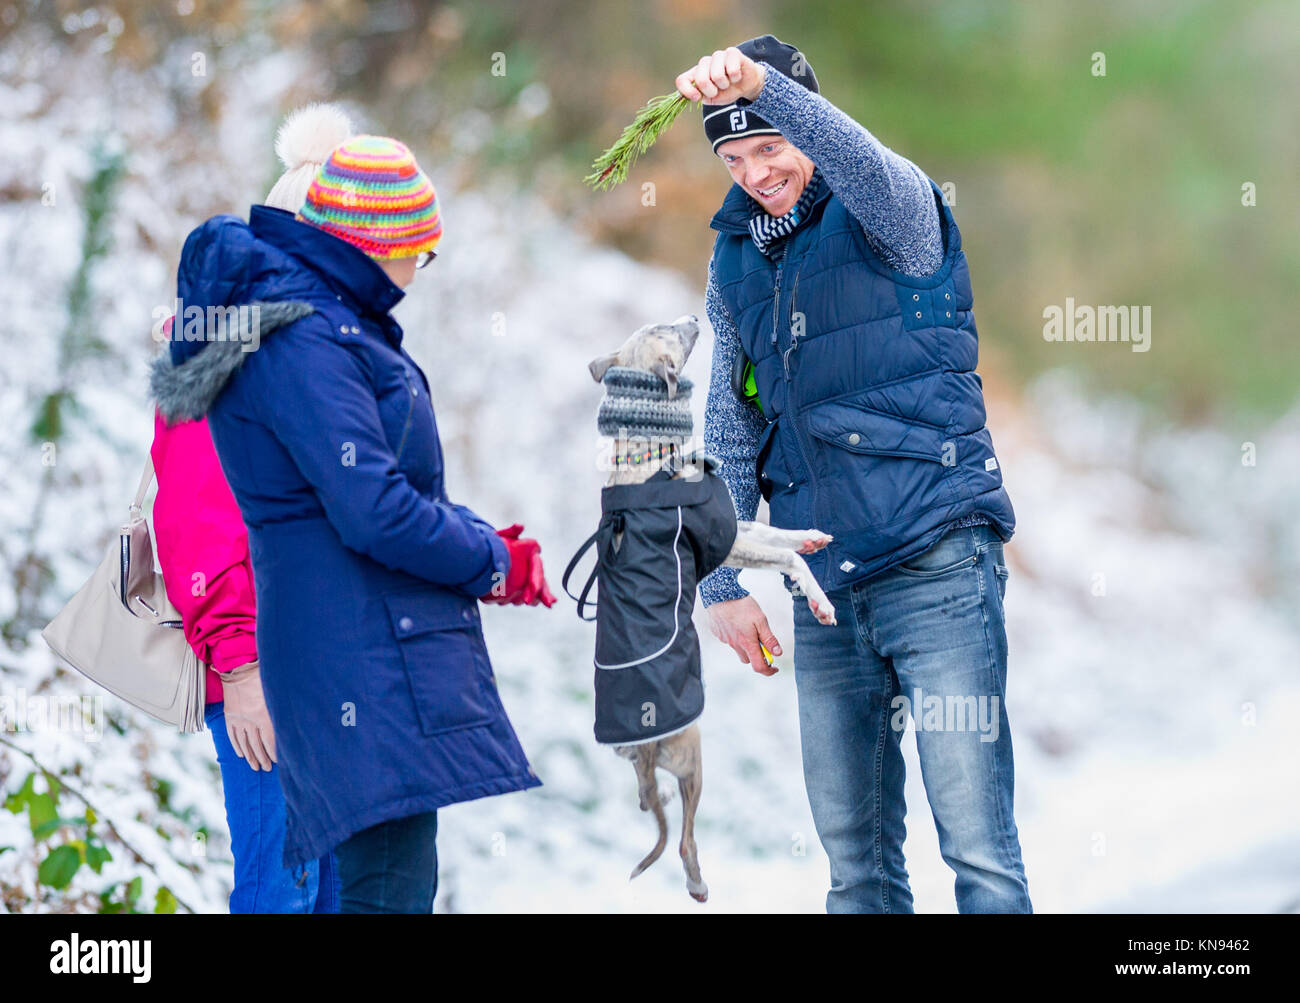 Man teasing a young Whippet pup with a pine tree leaf. - Stock Image